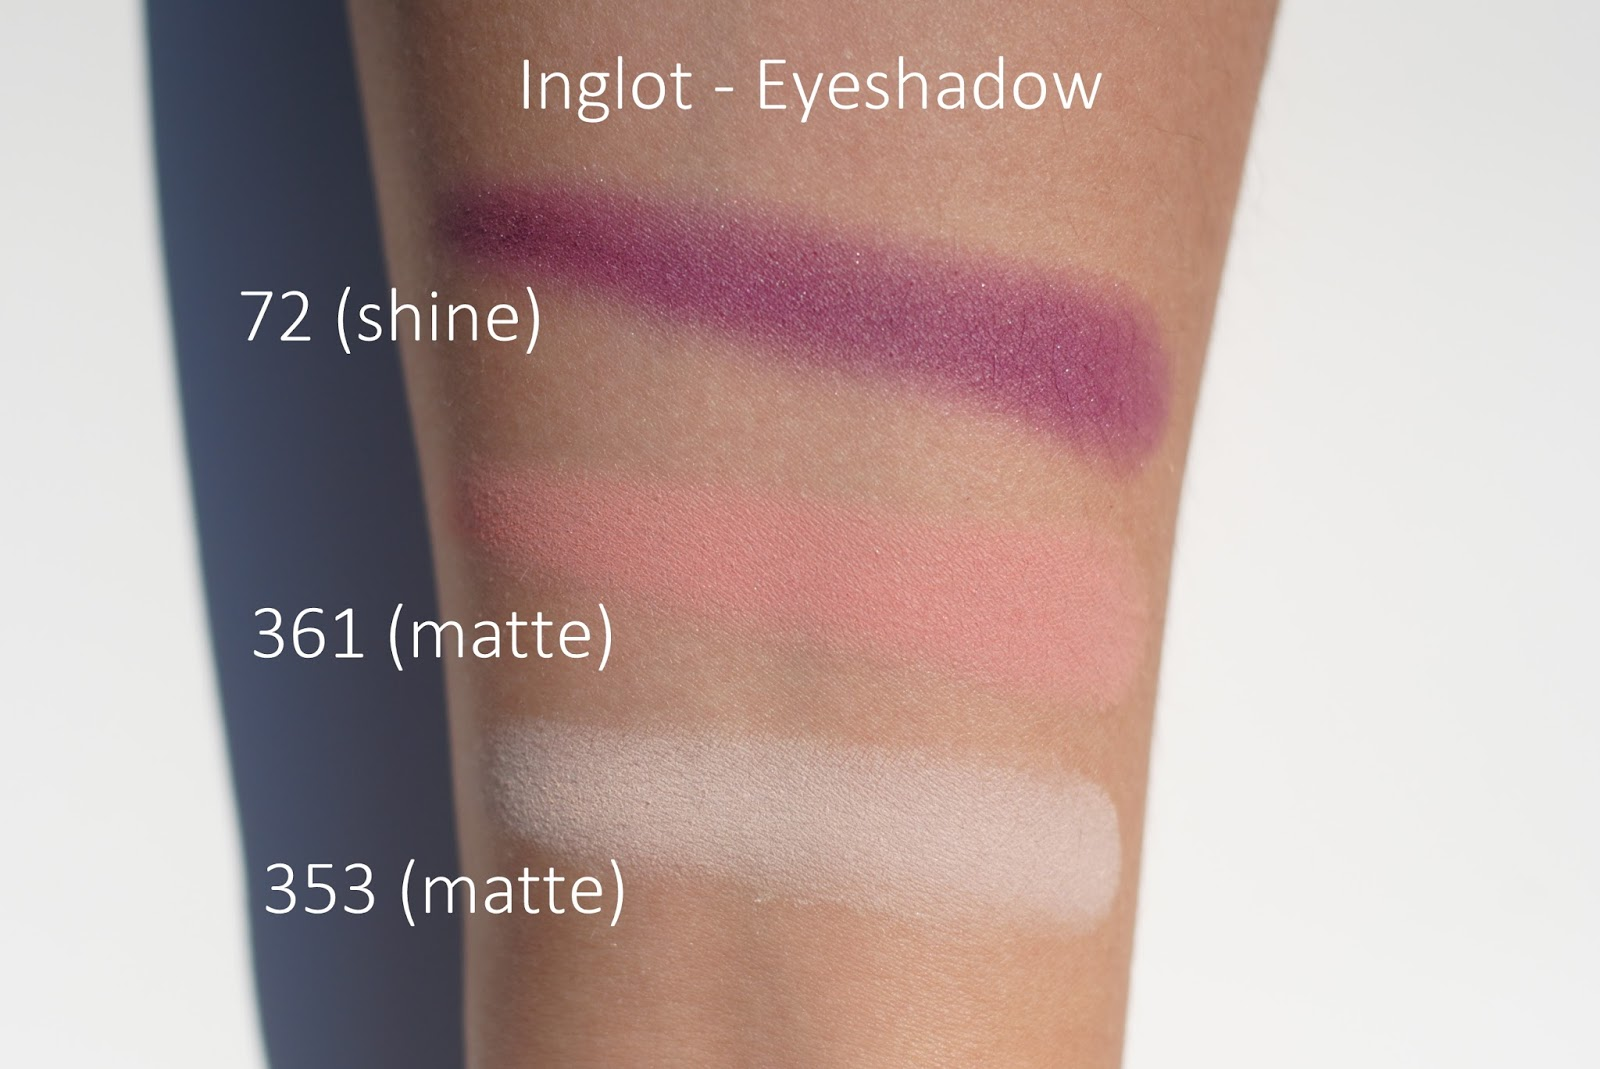 inglot palette swatches